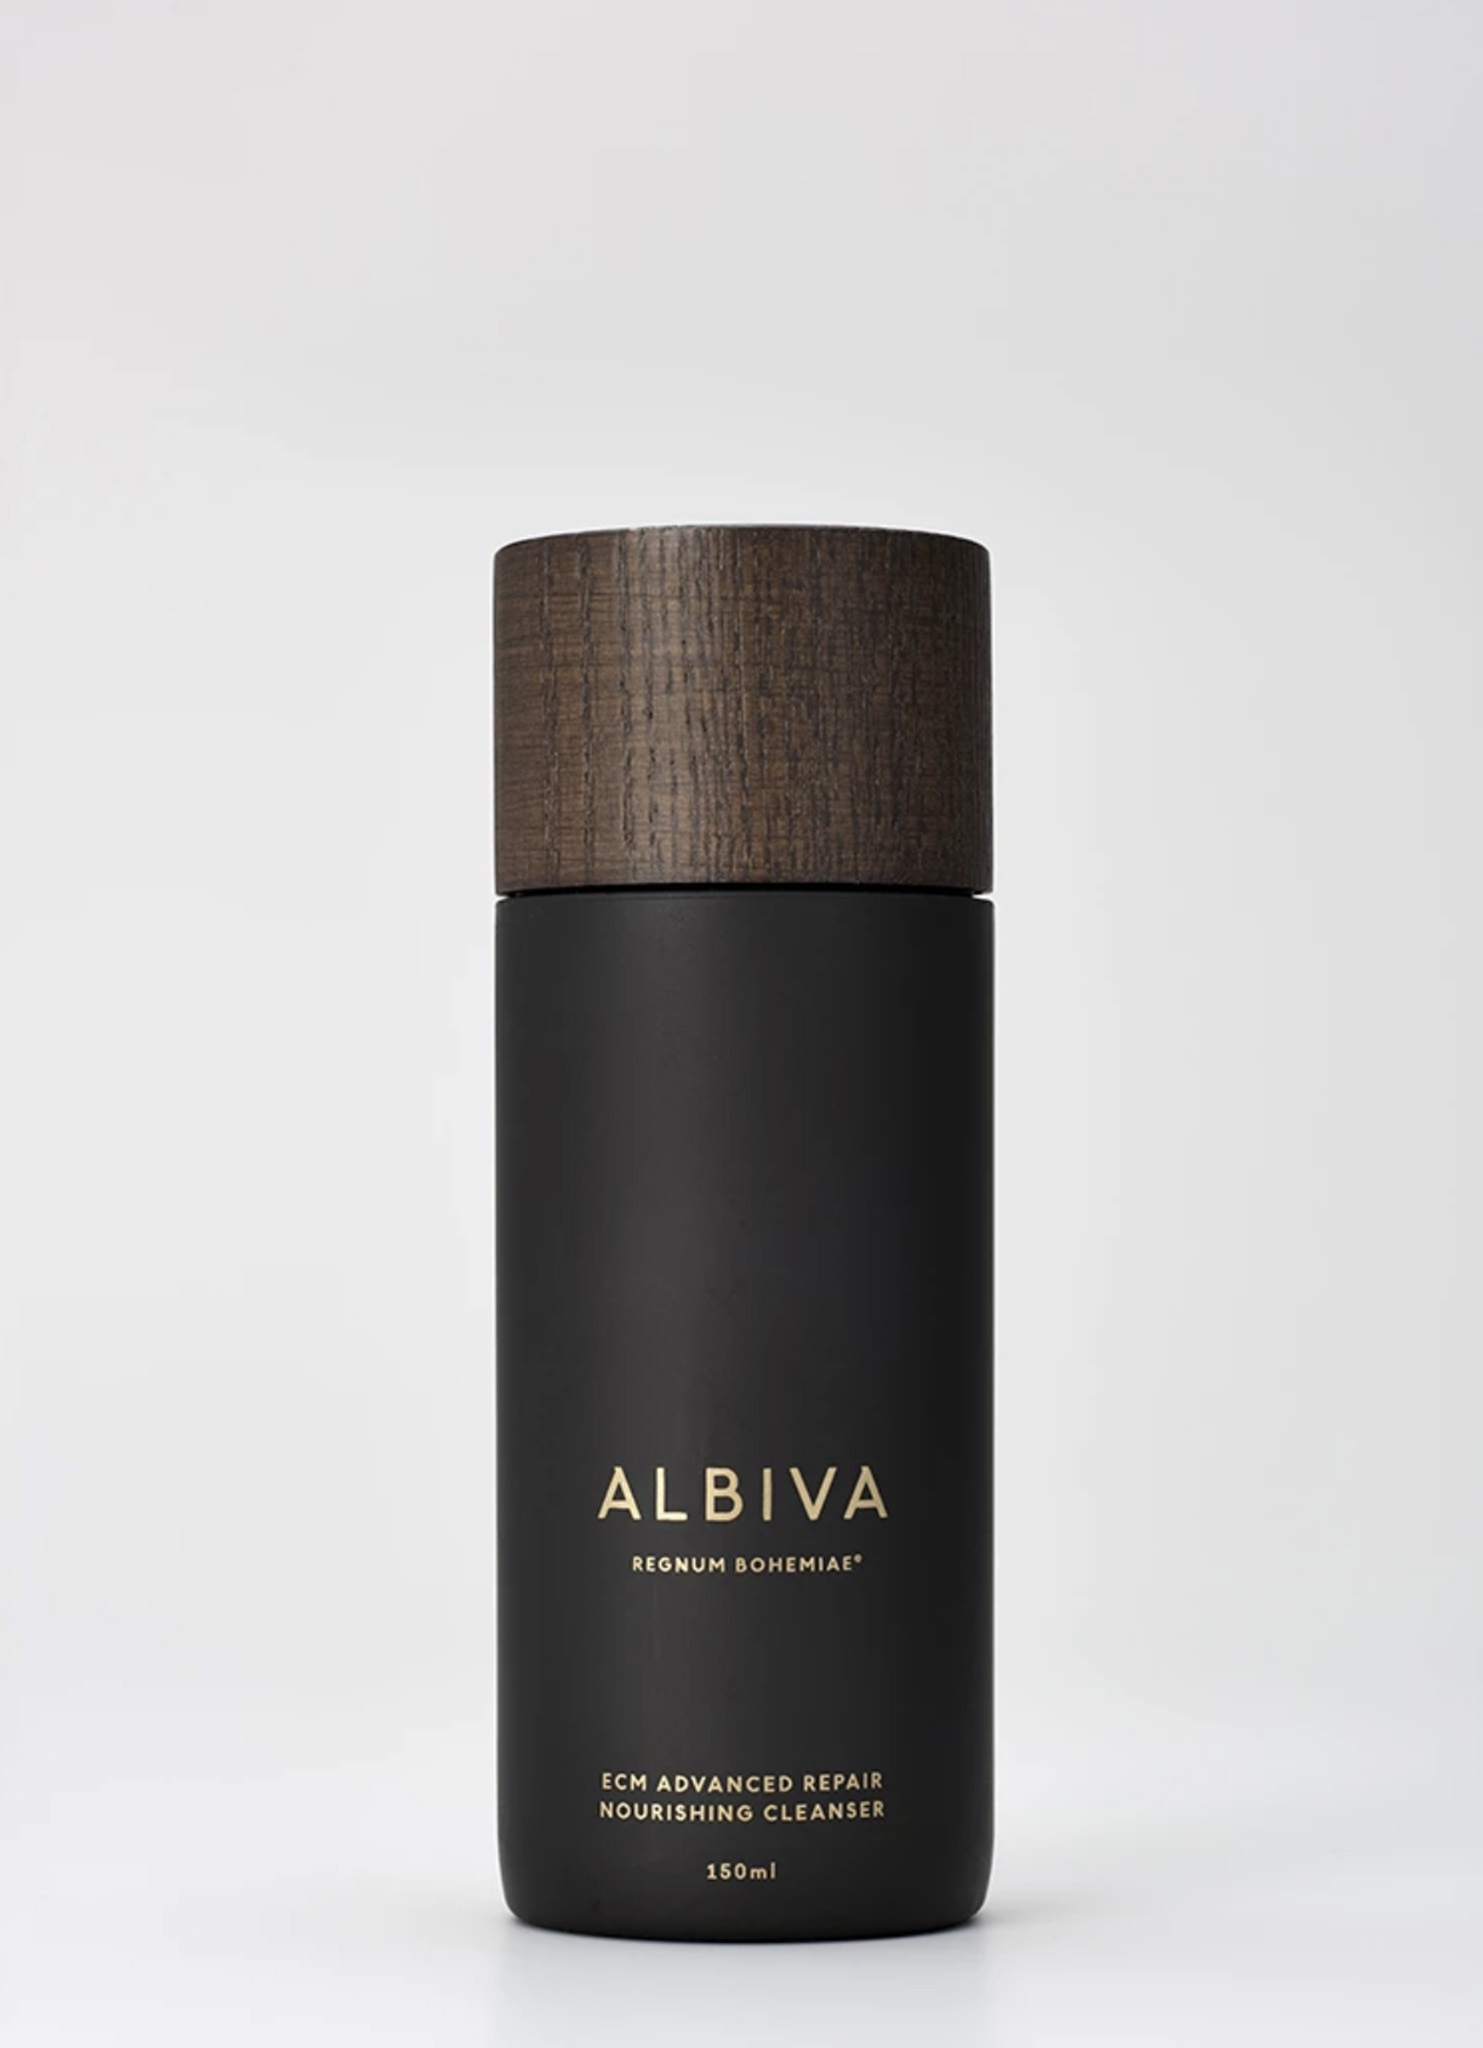 Albiva Repair Cleanser